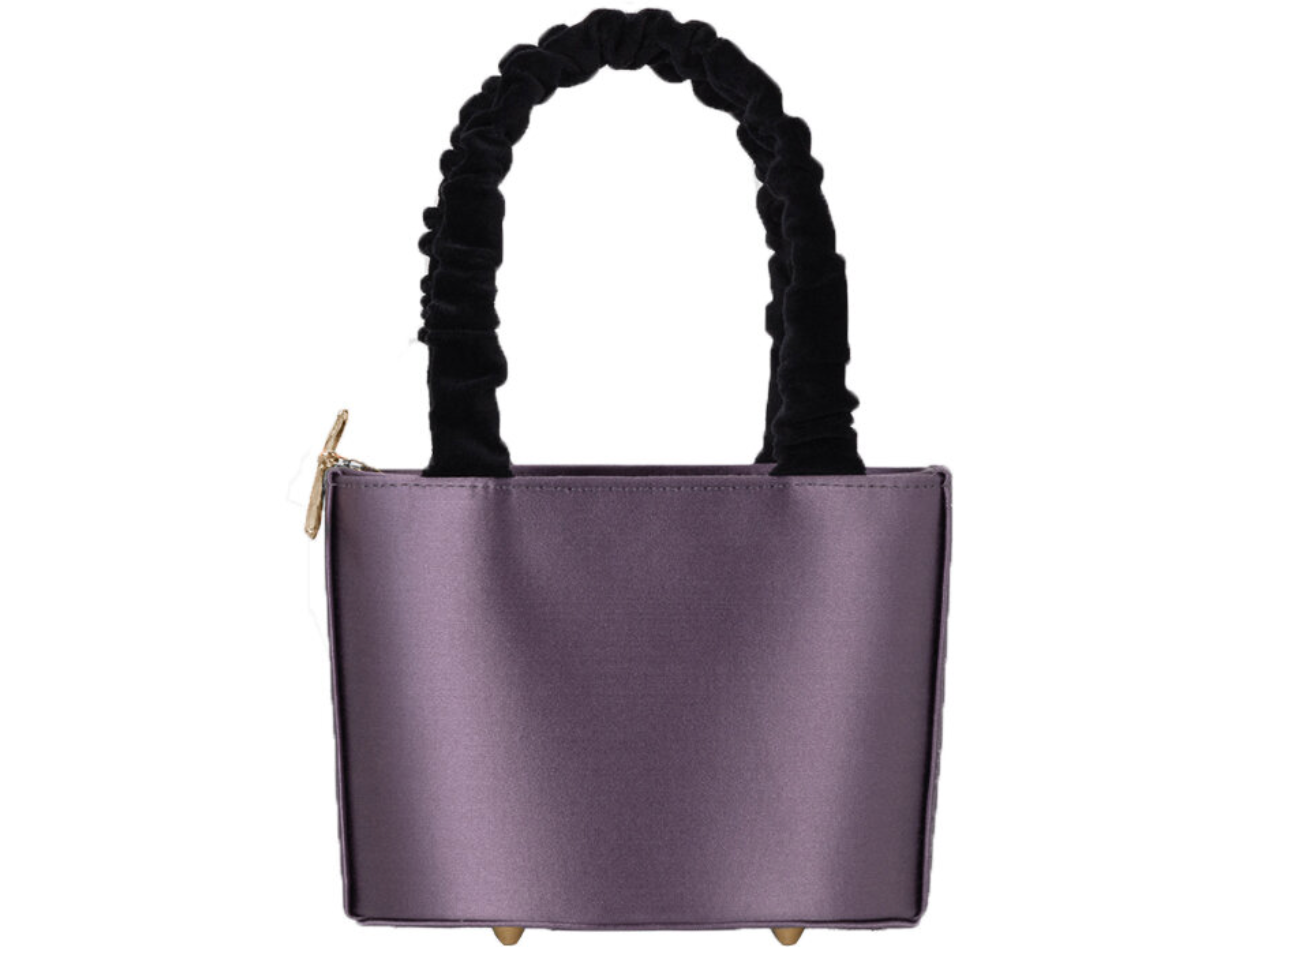 Sophia Mauve Vegan Bag Velvet and Satin Bag Gold Details Mashu Natural x Lab